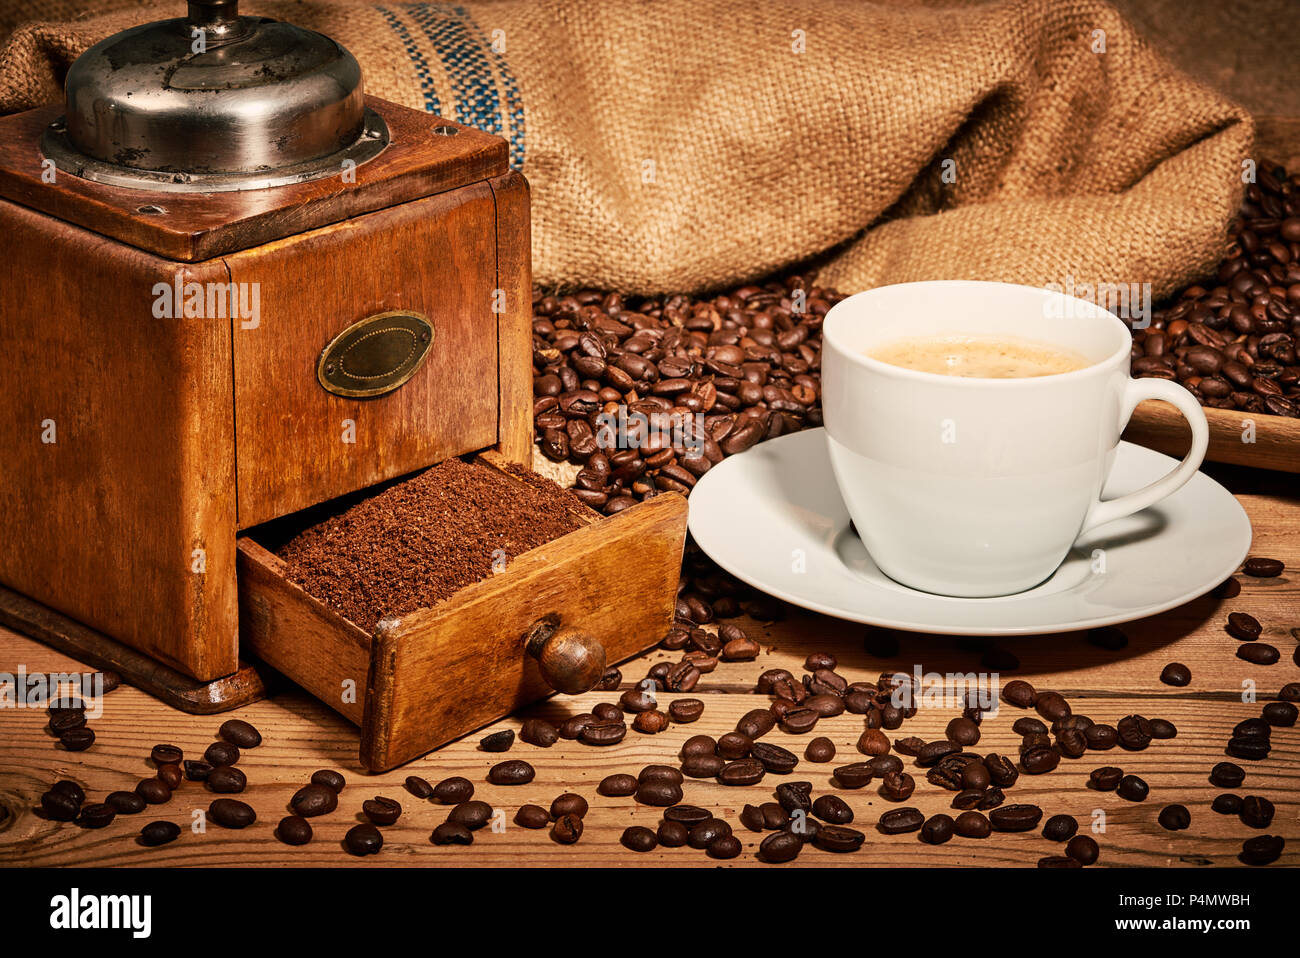 Cup of coffee with old coffee grinder and beans on wooden table - Stock Image